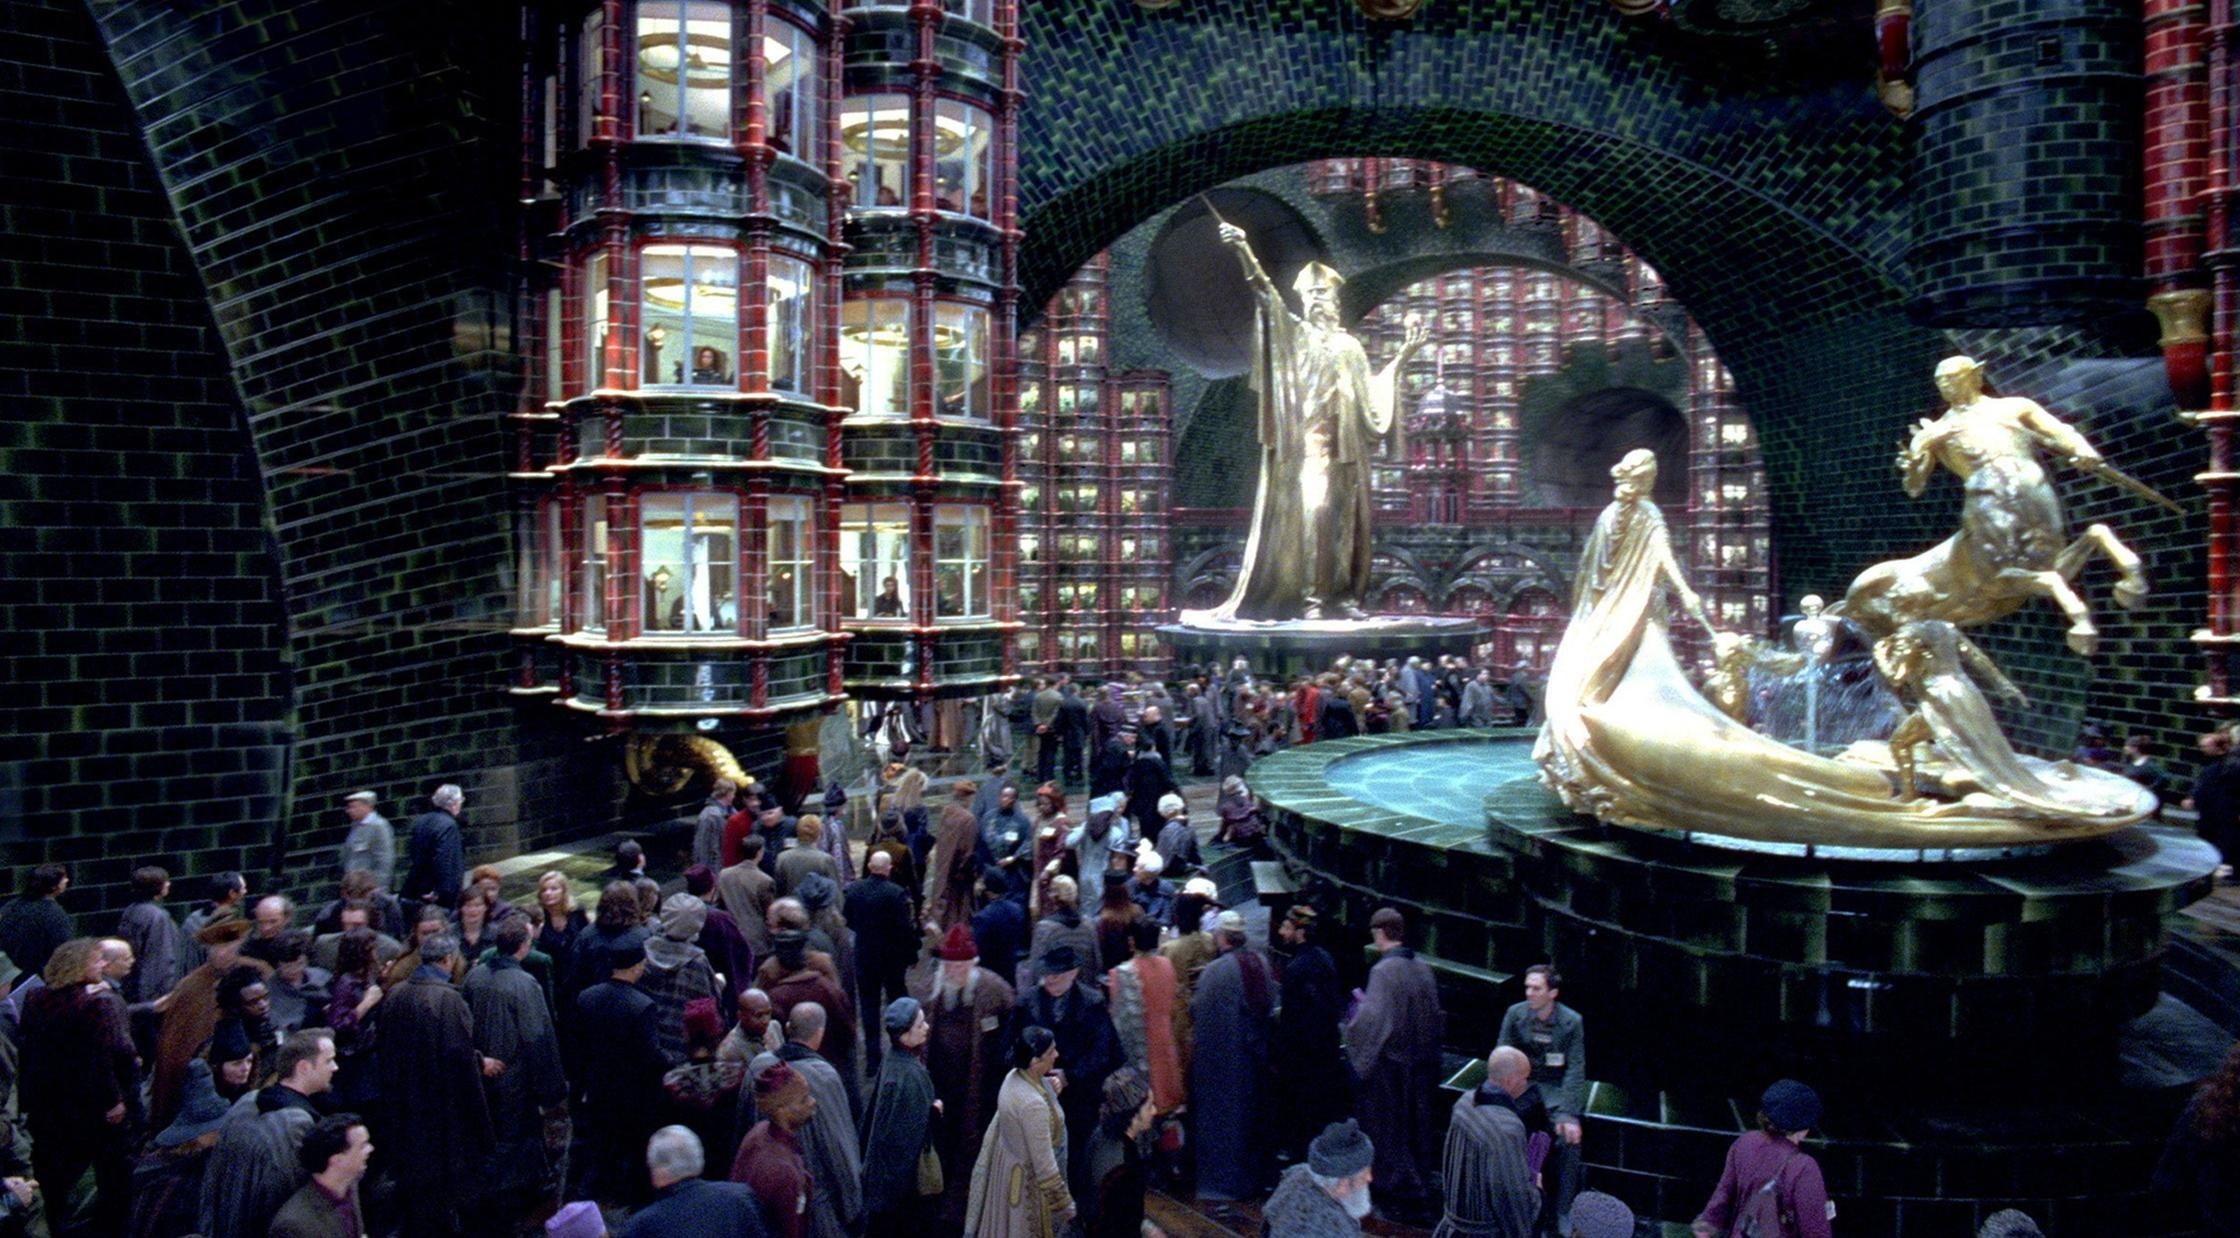 The ministry of magic main entrance with giant gold statues and bustling with workers